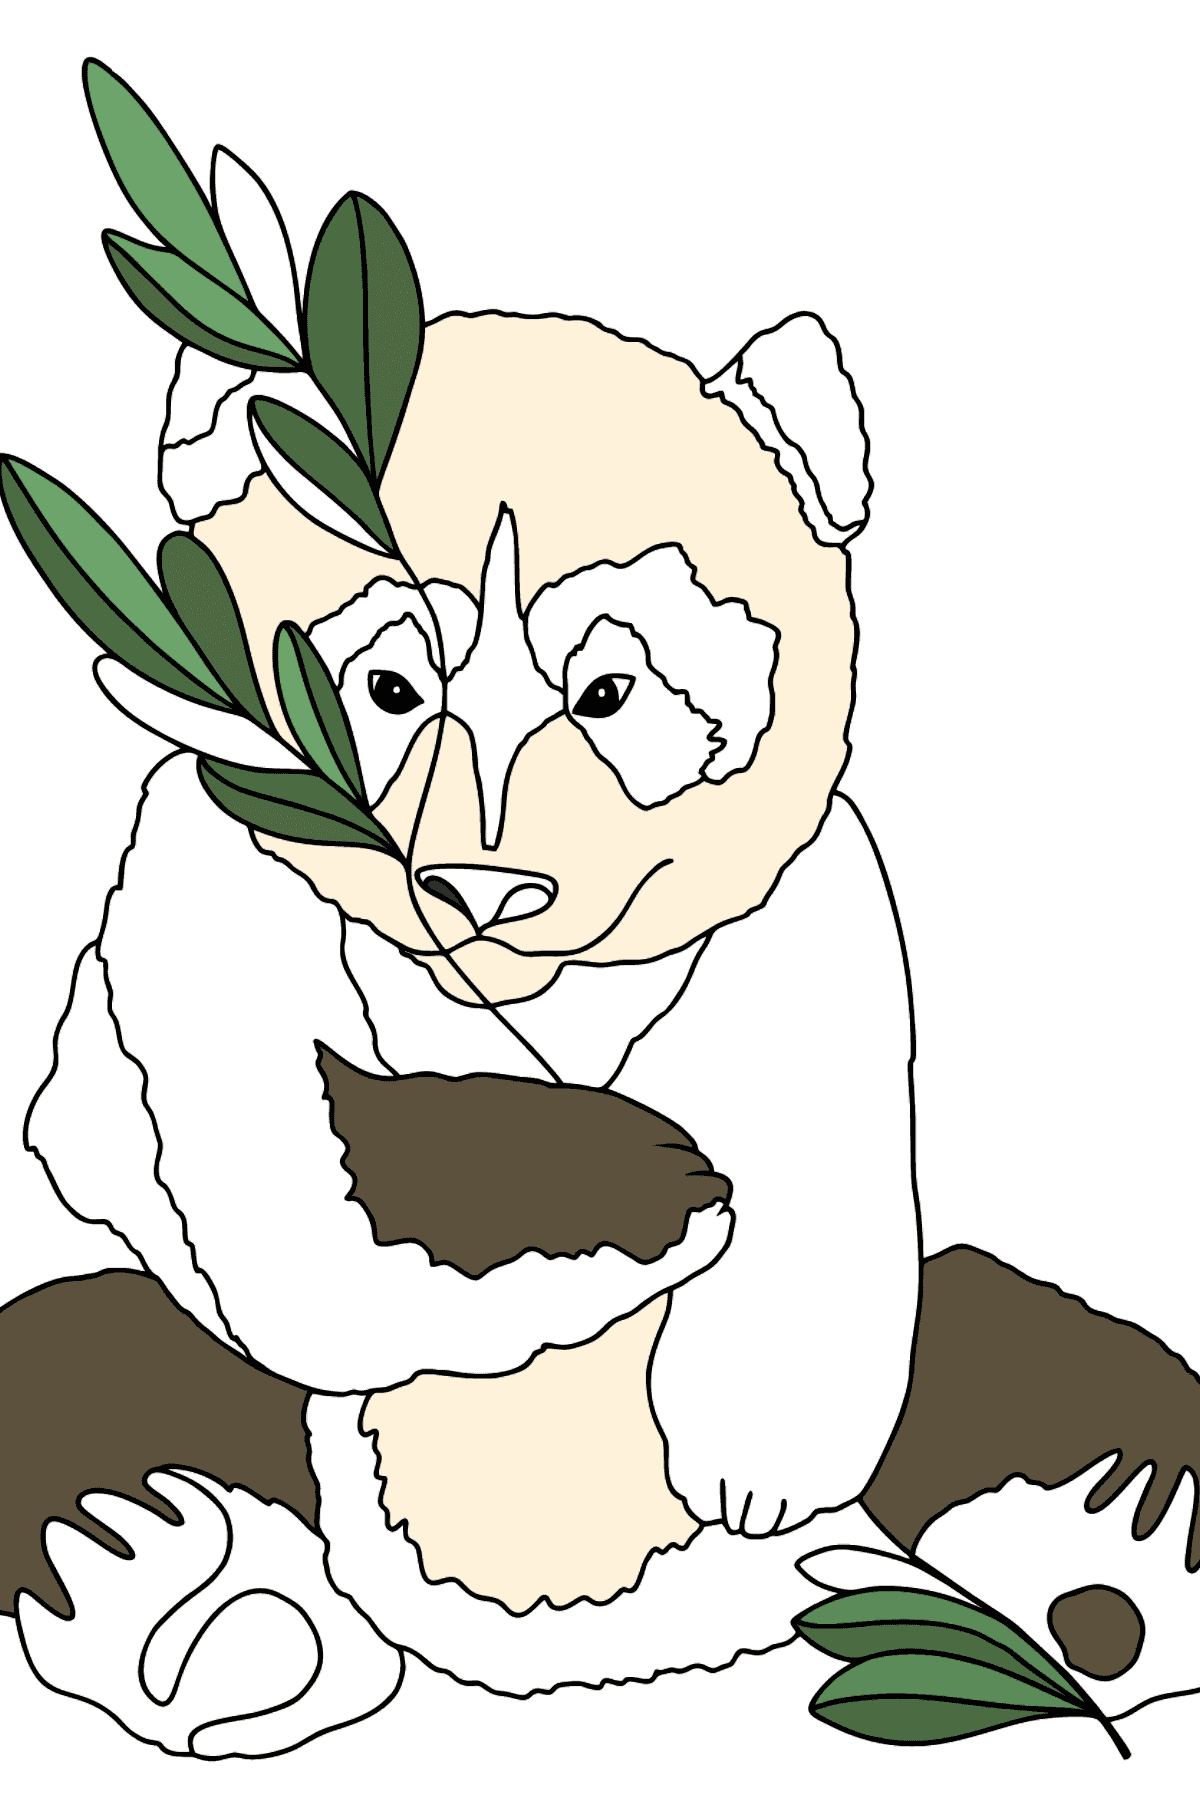 Coloring Page - A Panda Loves Bamboo Leaves - Coloring Pages for Kids